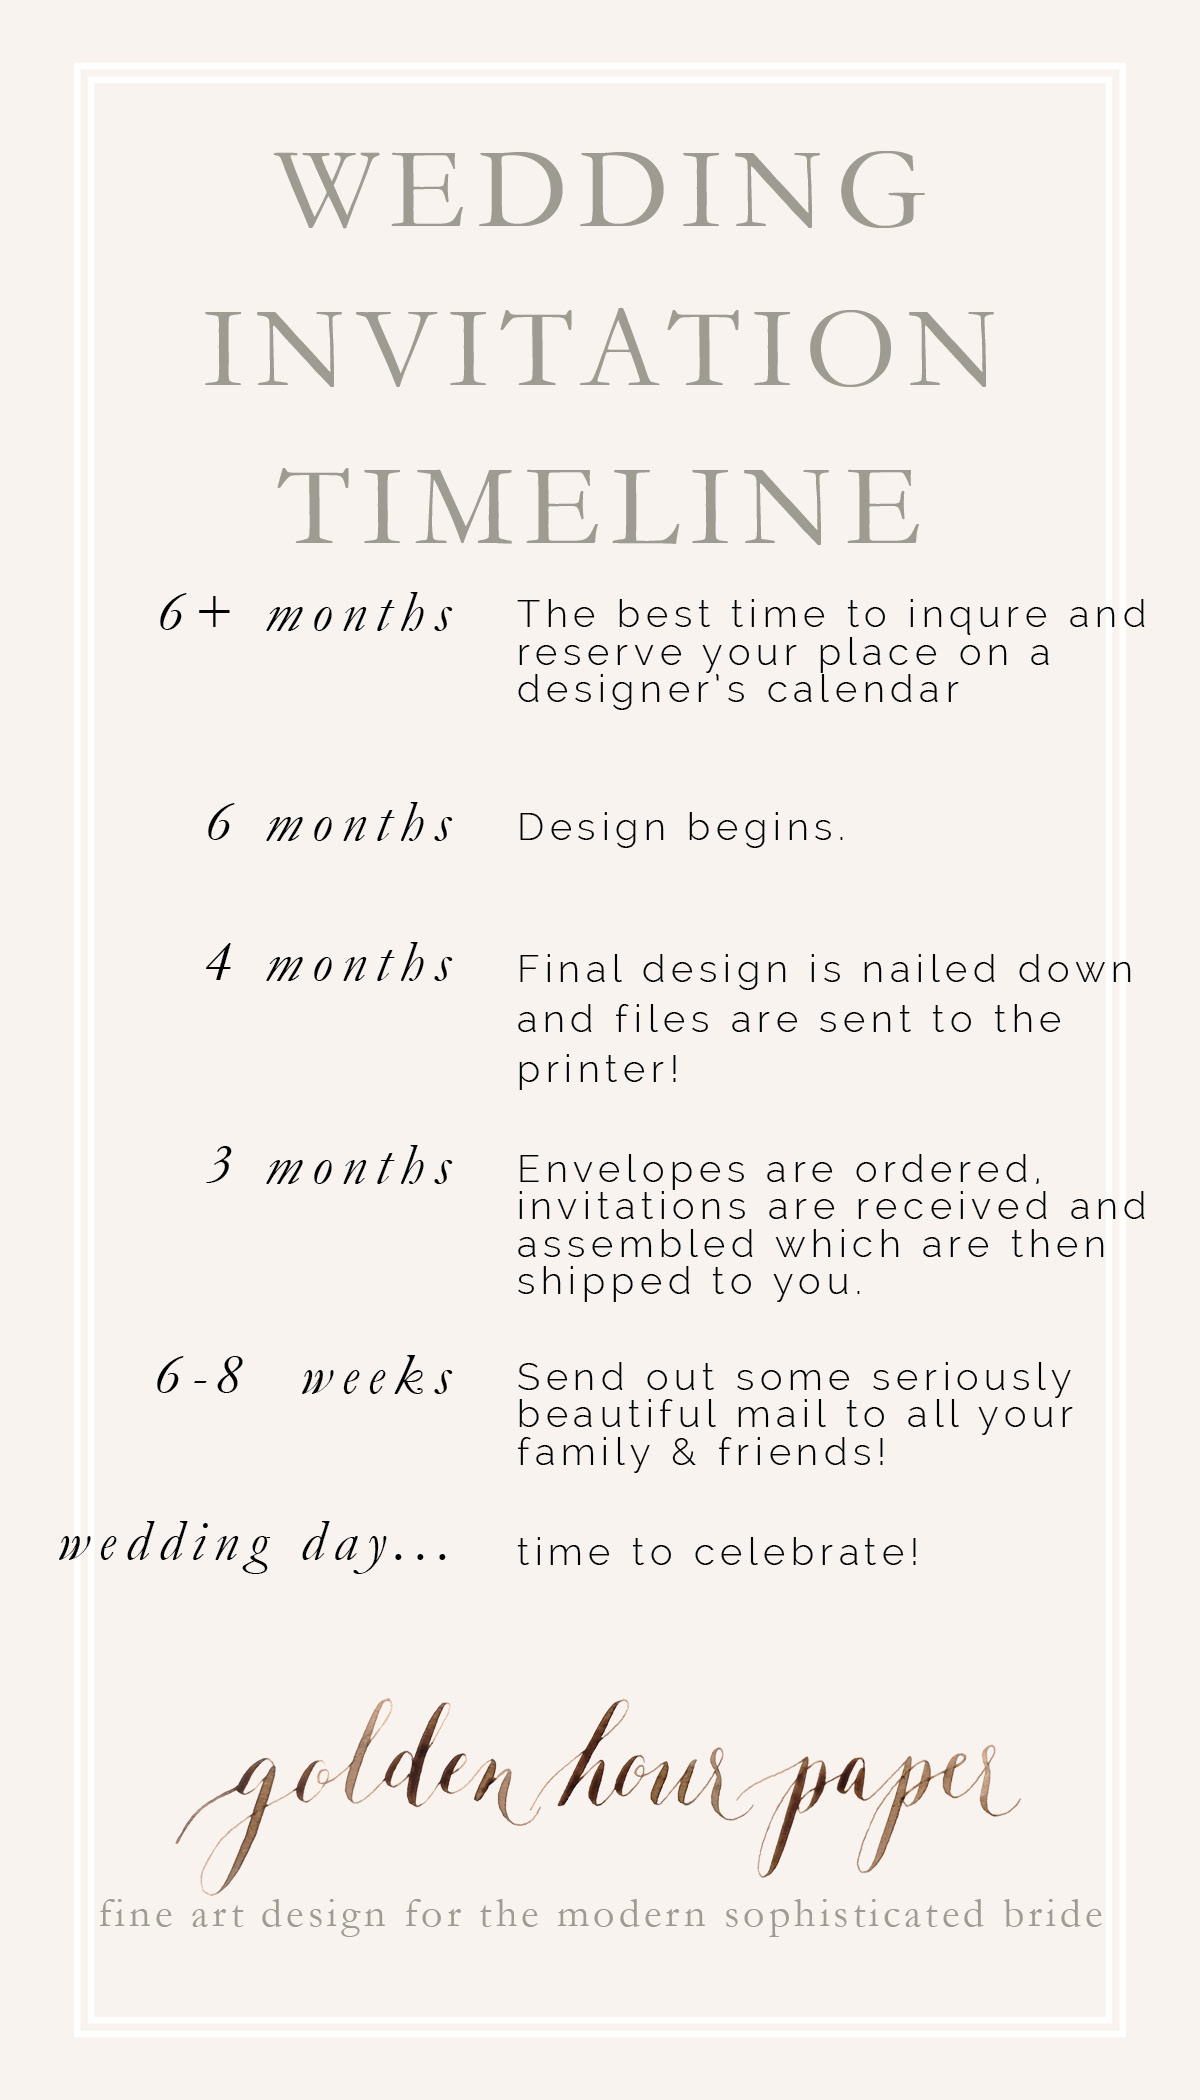 When do you send out wedding invitations?